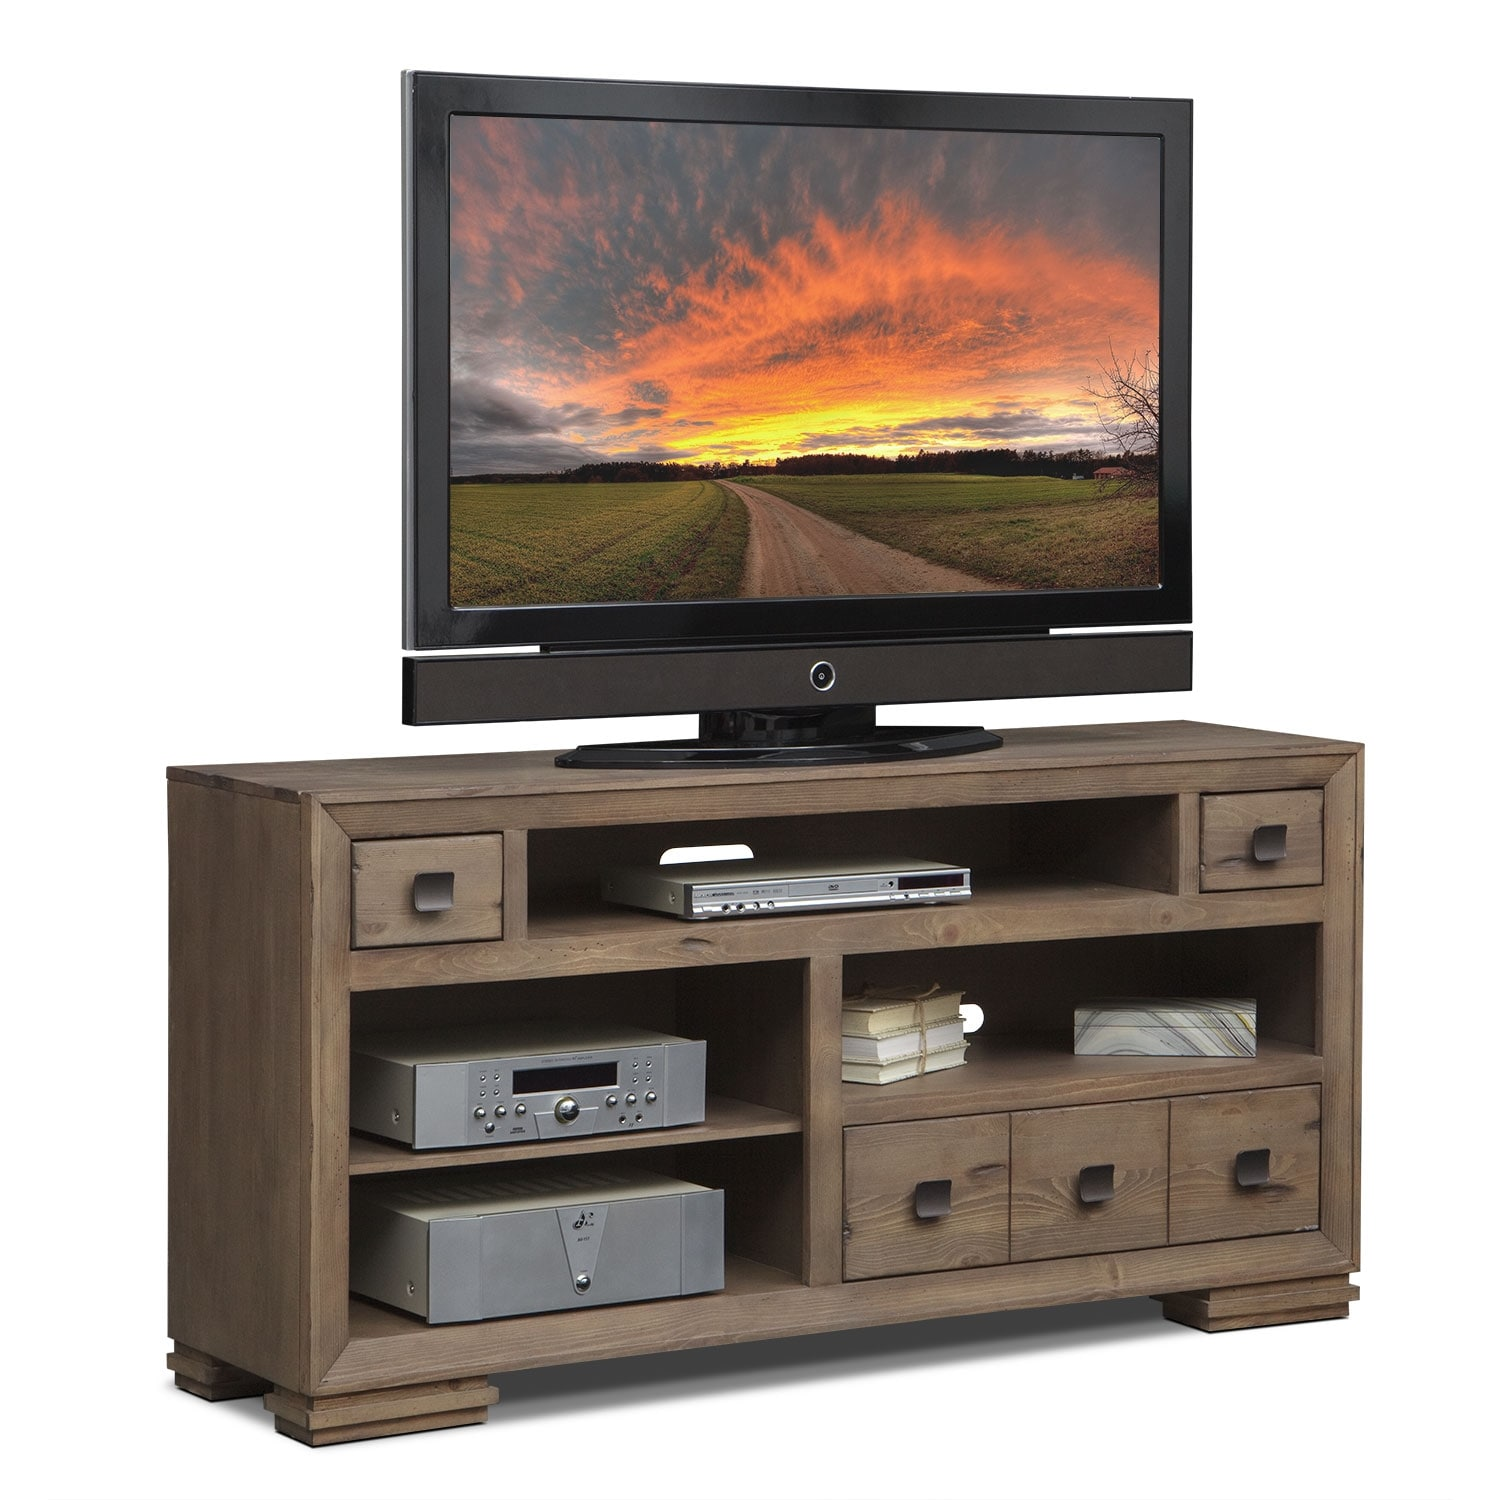 "Mesa 64"" TV Stand - Distressed Pine"